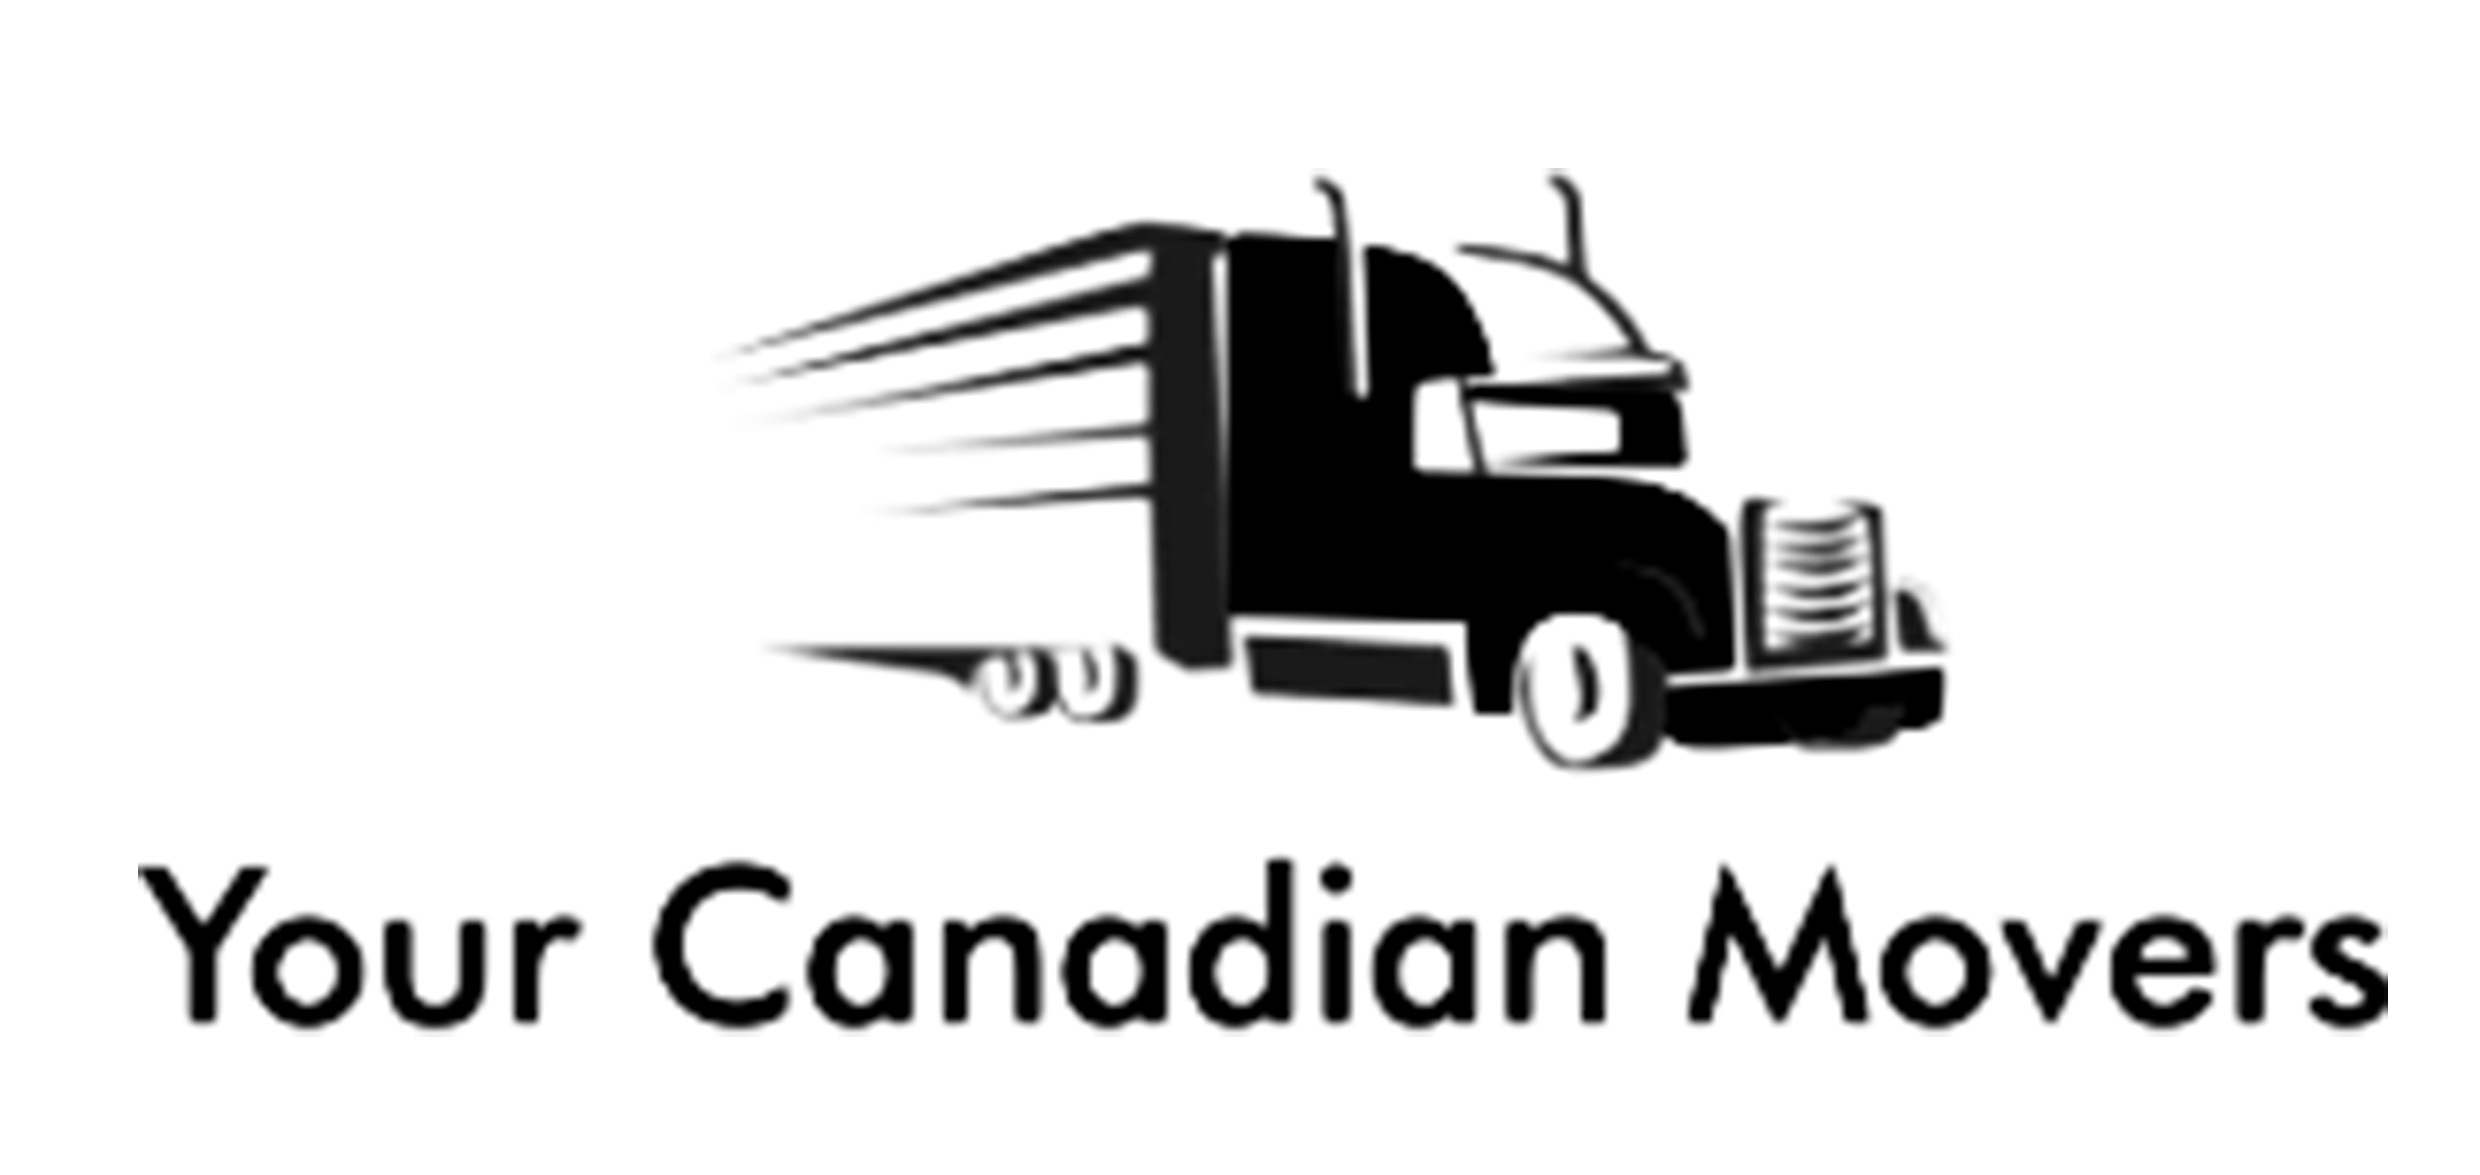 Your Canadian Movers